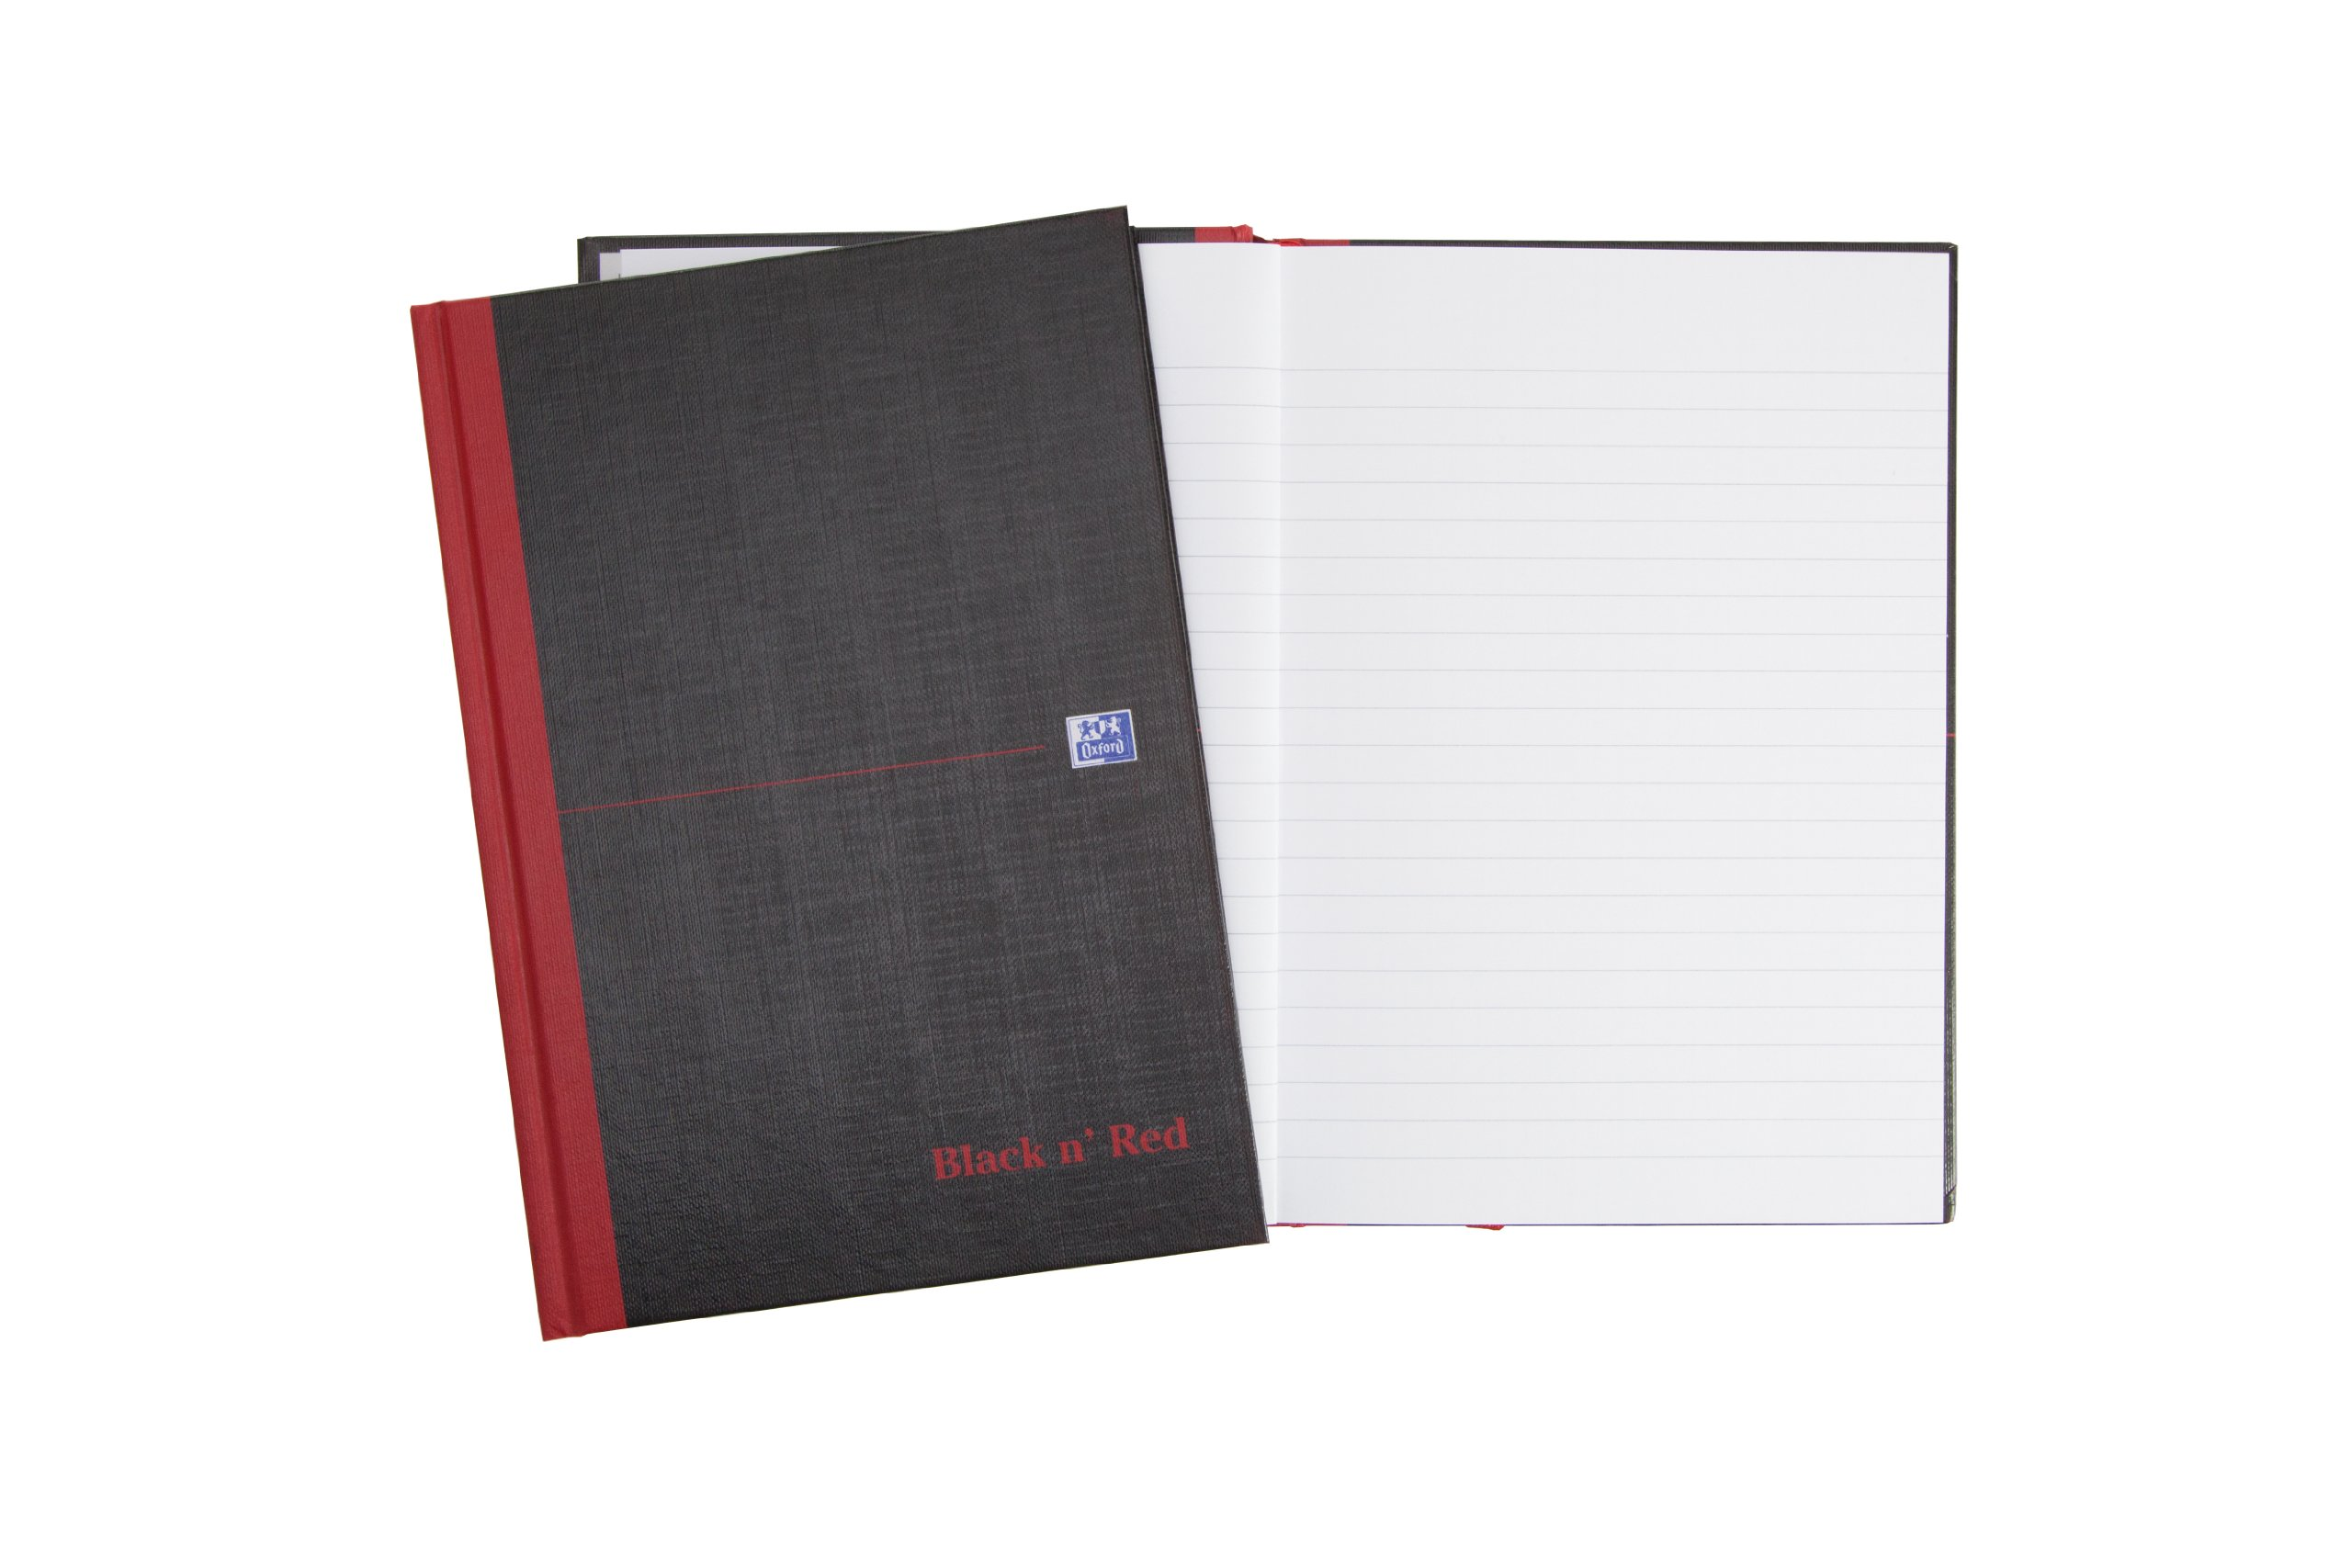 Oxford Black n' Red A4 192 Pages Matte Casebound Hard-Back Ruled Notebook (Pack of 5) Pack of 5 (A5) by Oxford (Image #5)